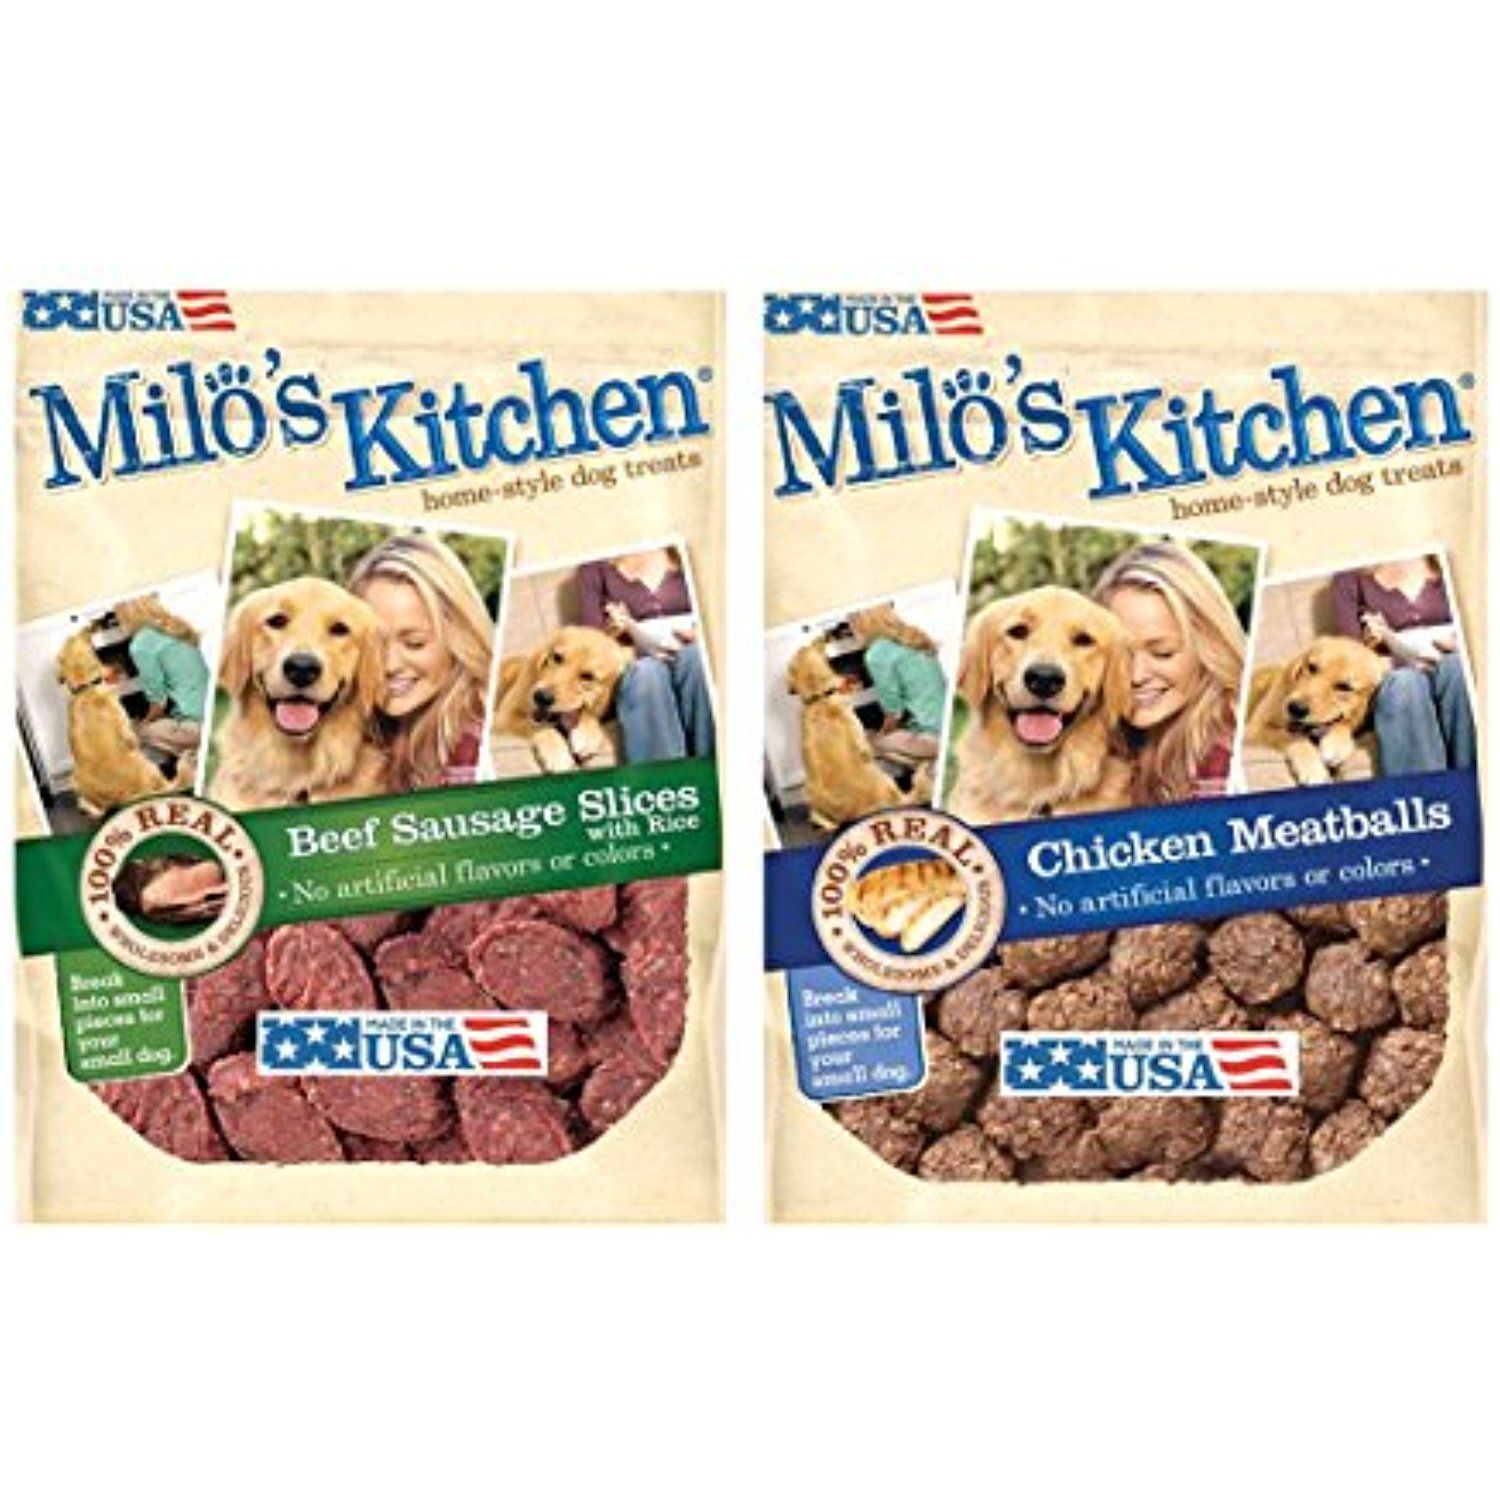 Milos Kitchen Flush Mount Lighting Milo S Bundle Chicken Meatballs And Beef Sausage Dog Treats 18 Oz Each The Details Can Be Found By Clicking On Image